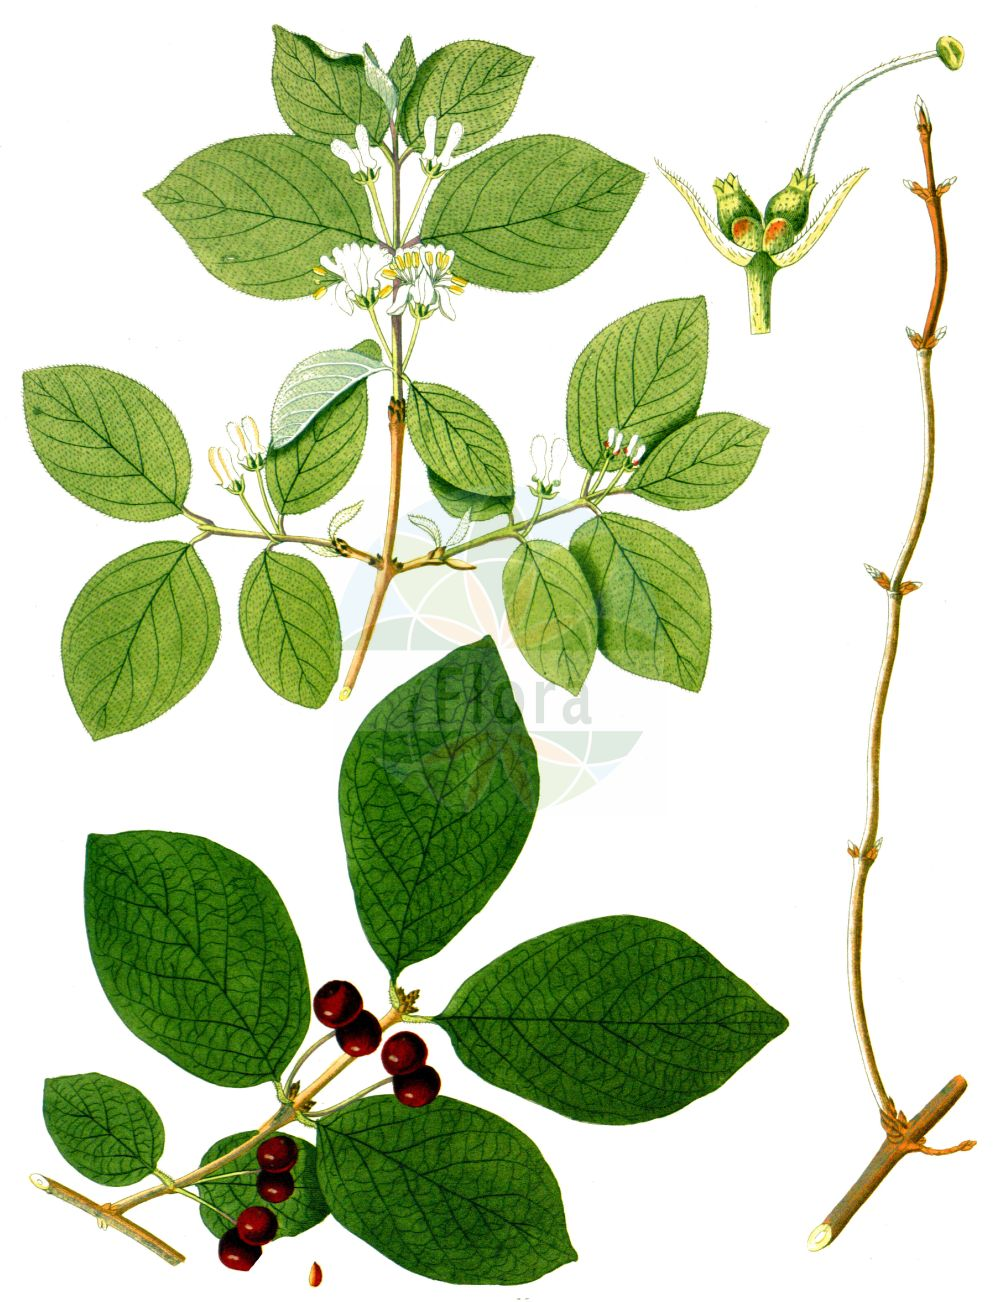 Historische Abbildung von Lonicera xylosteum (Rote Heckenkirsche - Fly Honeysuckle). Das Bild zeigt Blatt, Bluete, Frucht und Same. ---- Historical Drawing of Lonicera xylosteum (Rote Heckenkirsche - Fly Honeysuckle).The image is showing leaf, flower, fruit and seed.(Lonicera xylosteum,Rote Heckenkirsche,Fly Honeysuckle,Lonicera leiophylla,Lonicera luteiflora,Lonicera ochroleuca,Lonicera xylosteum,Rote Heckenkirsche,Beinholz,Rotes Geissblatt,Fly Honeysuckle,Dwarf Honeysuckle,Lonicera,Heckenkirsche,Honeysuckle,Caprifoliaceae,Geissblattgewaechse,Honeysuckle family,Blatt,Bluete,Frucht,Same,leaf,flower,fruit,seed,Krauss (1802f))